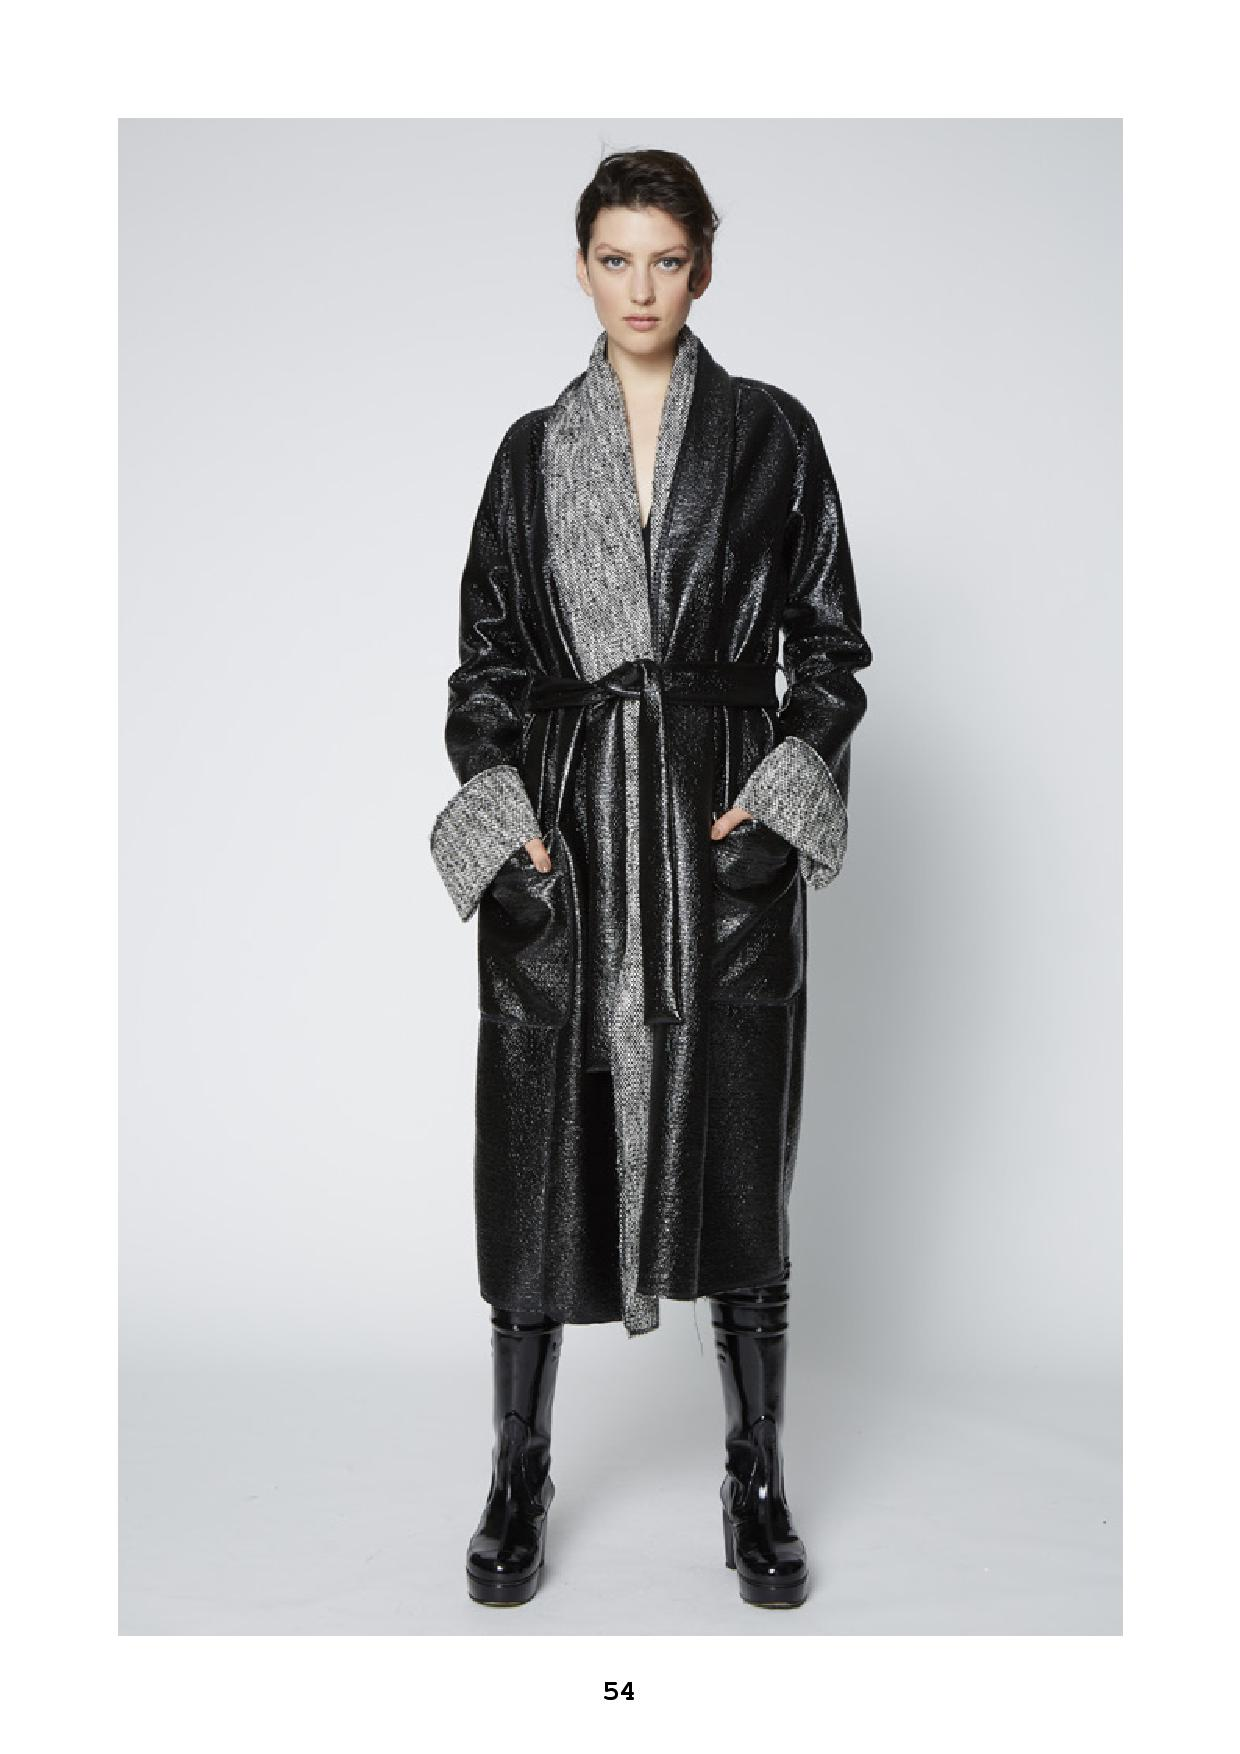 aw17 women s keypieces-page-055